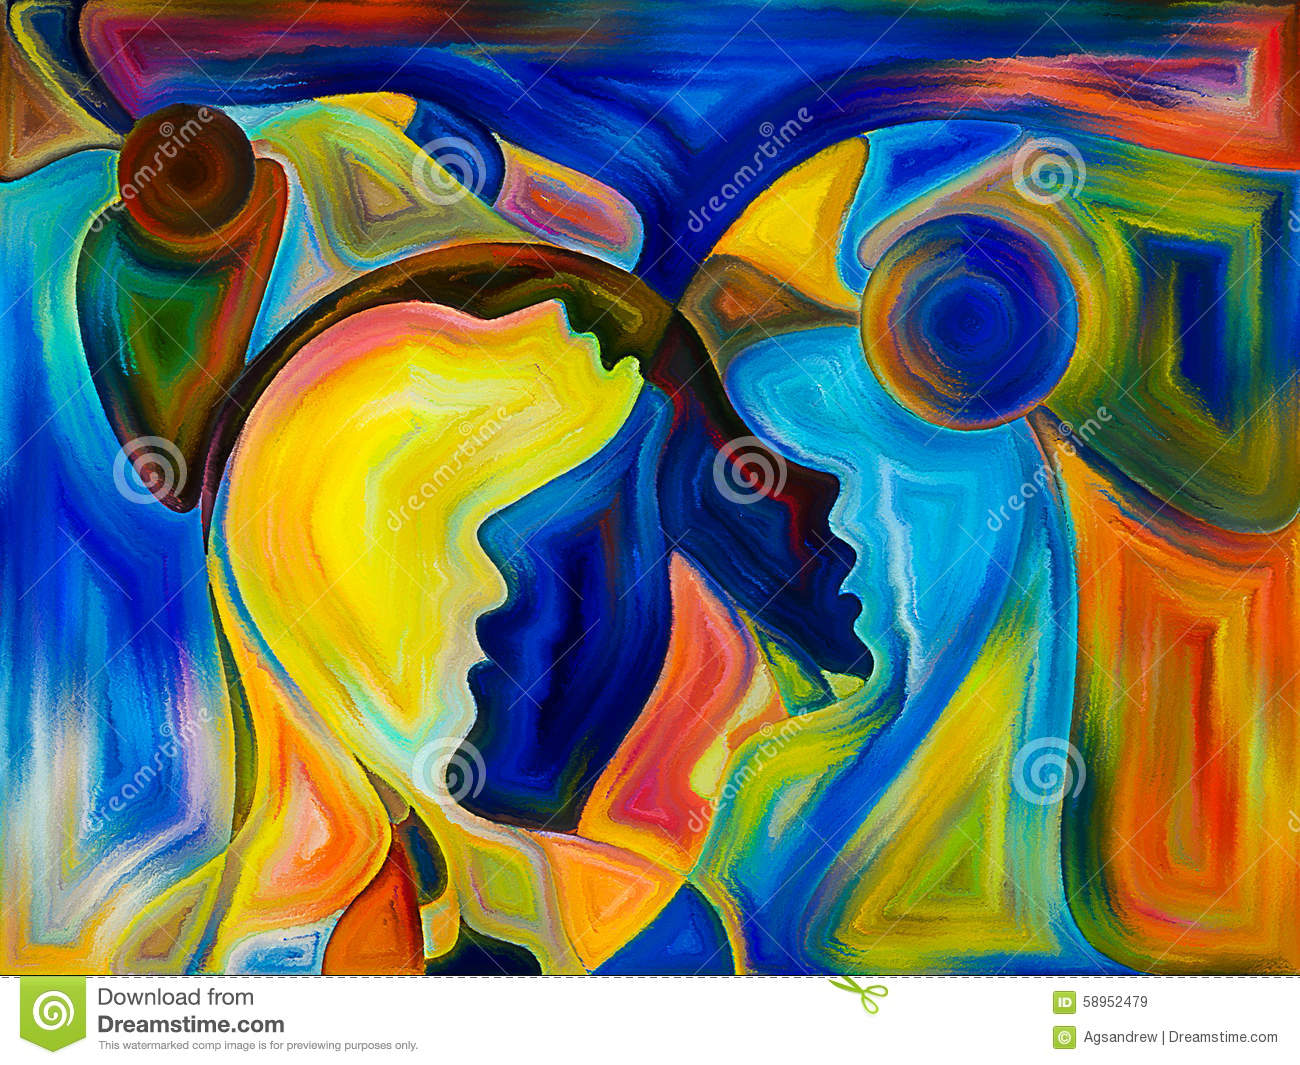 angels of color stock image image of background imagination 58952479